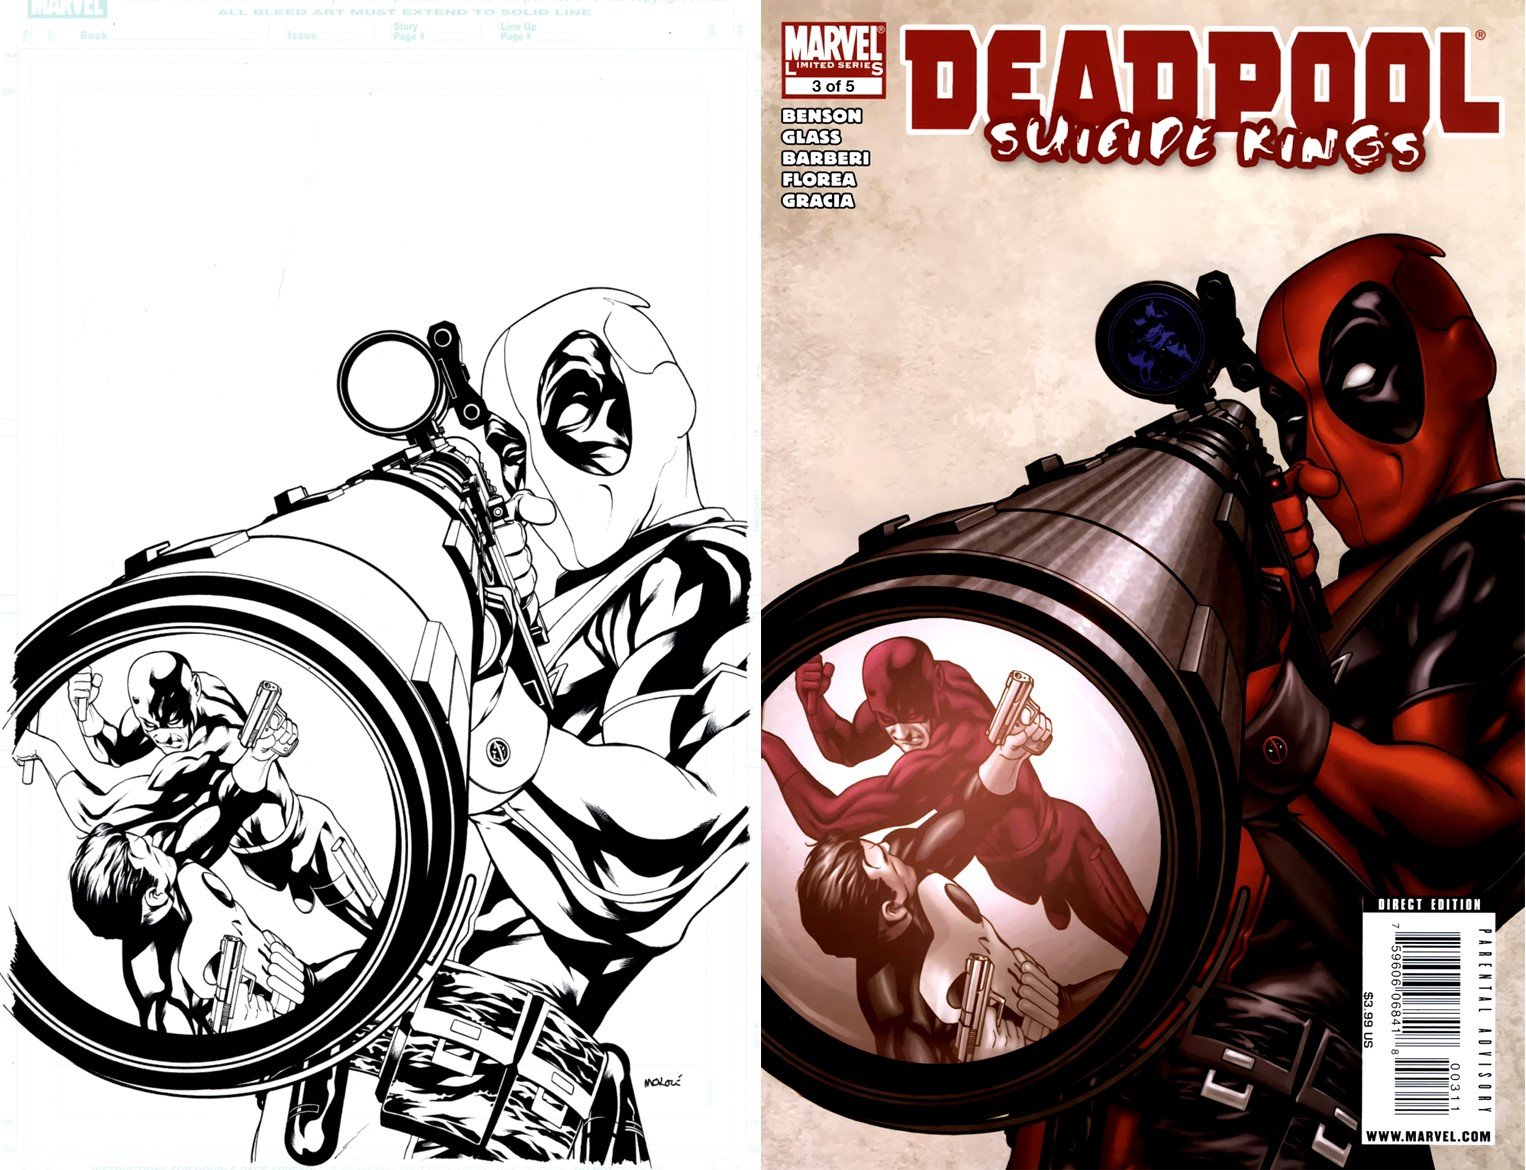 Deadpool: Suicide Kings #3 Cover (Deadpool; Punisher; Daredevil!) 2009